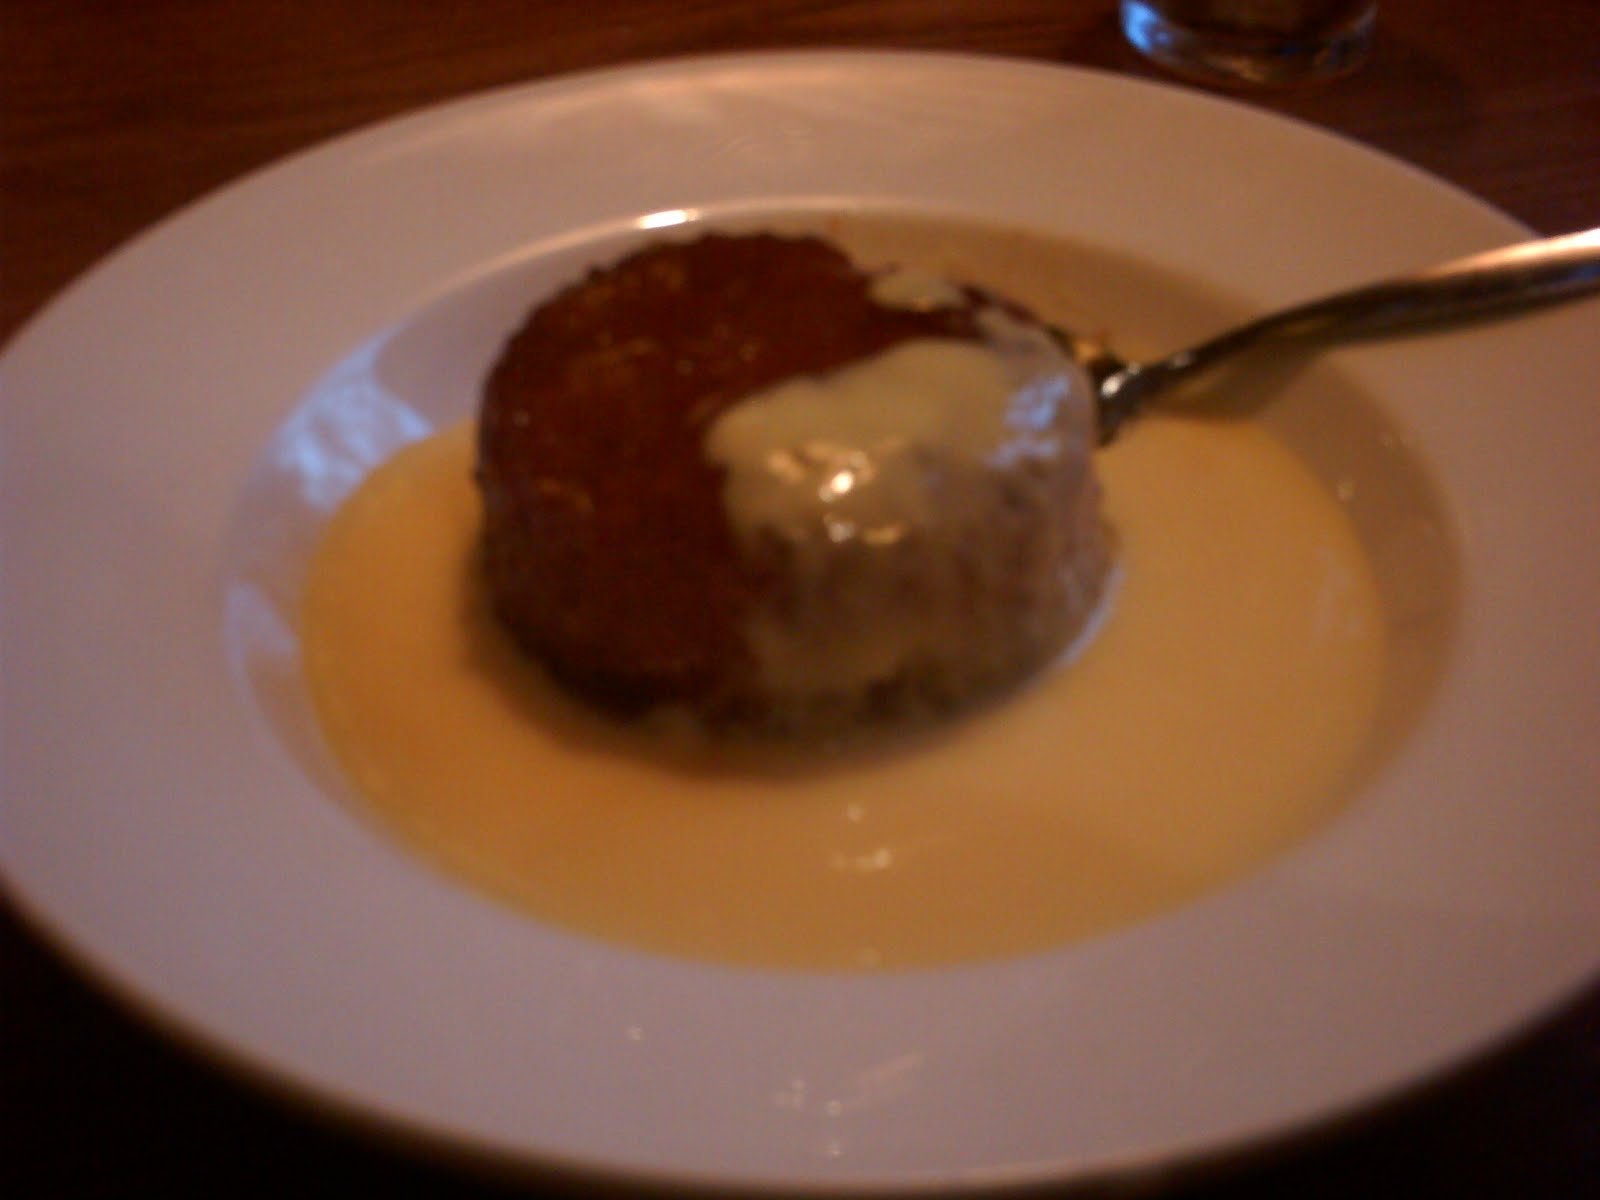 Kerie cooks: Treacle Pudding with Custard